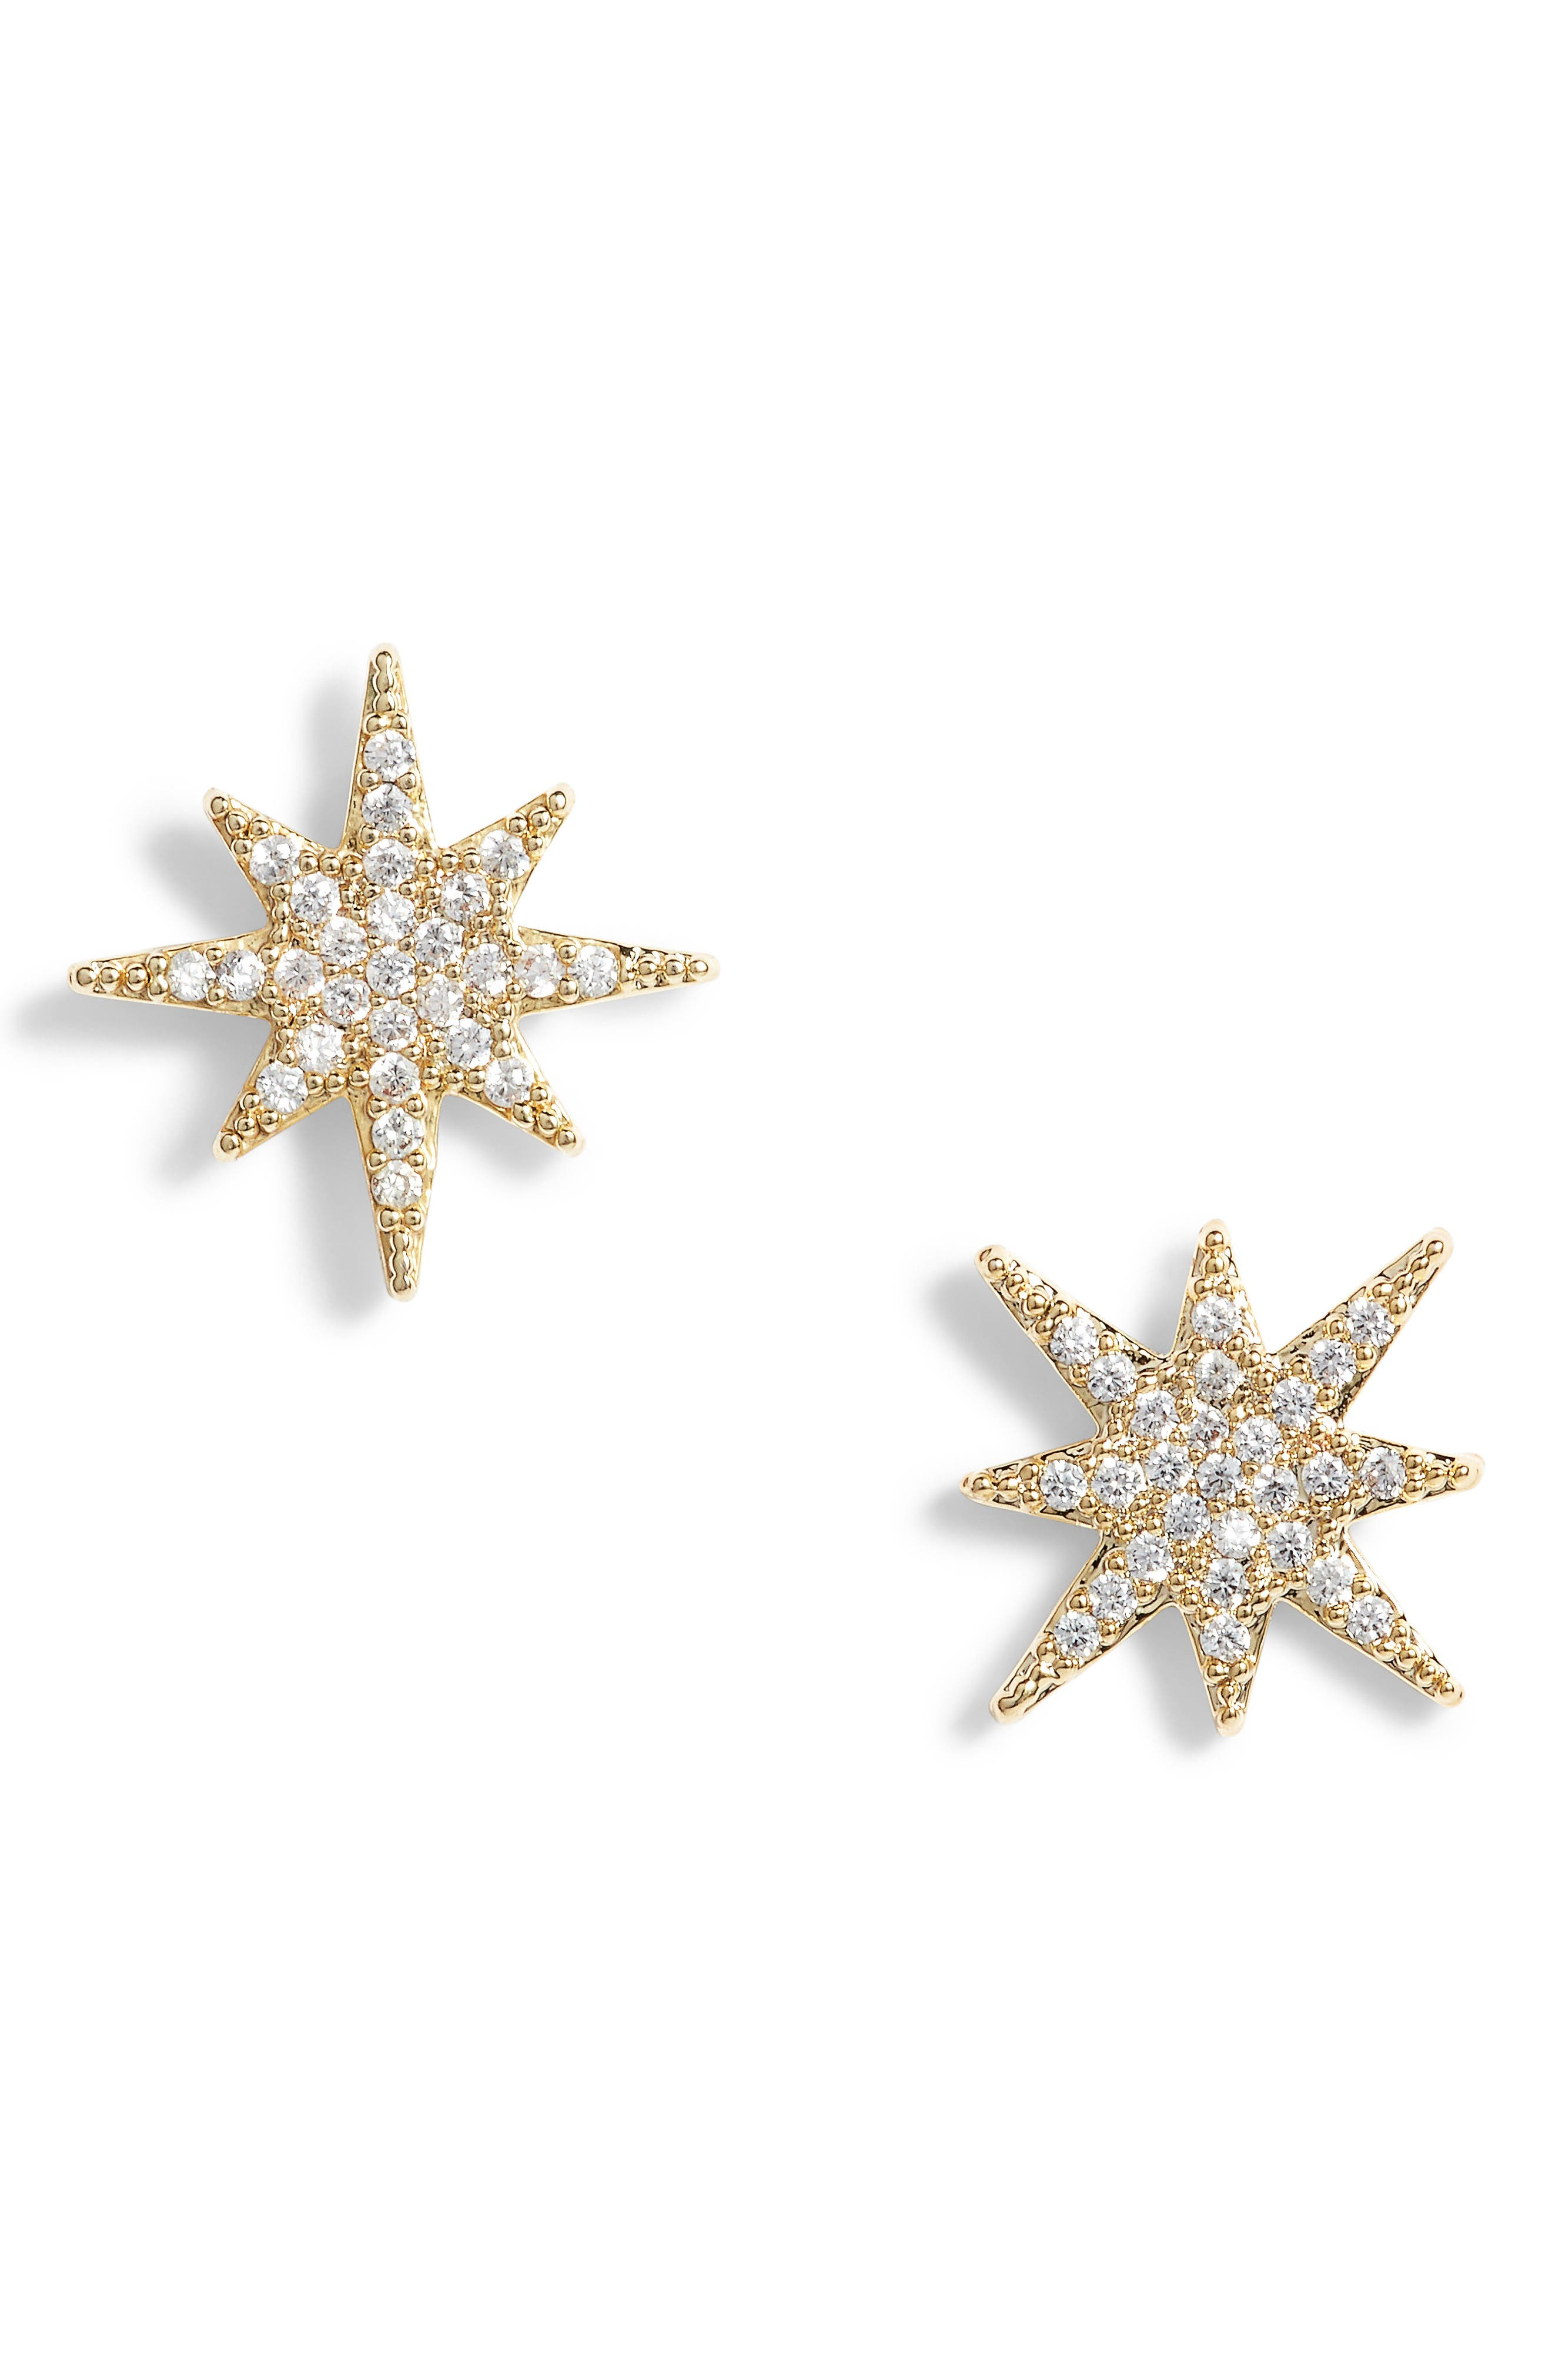 Small Starburst Crystal Earrings,                             Main thumbnail 1, color,                             710